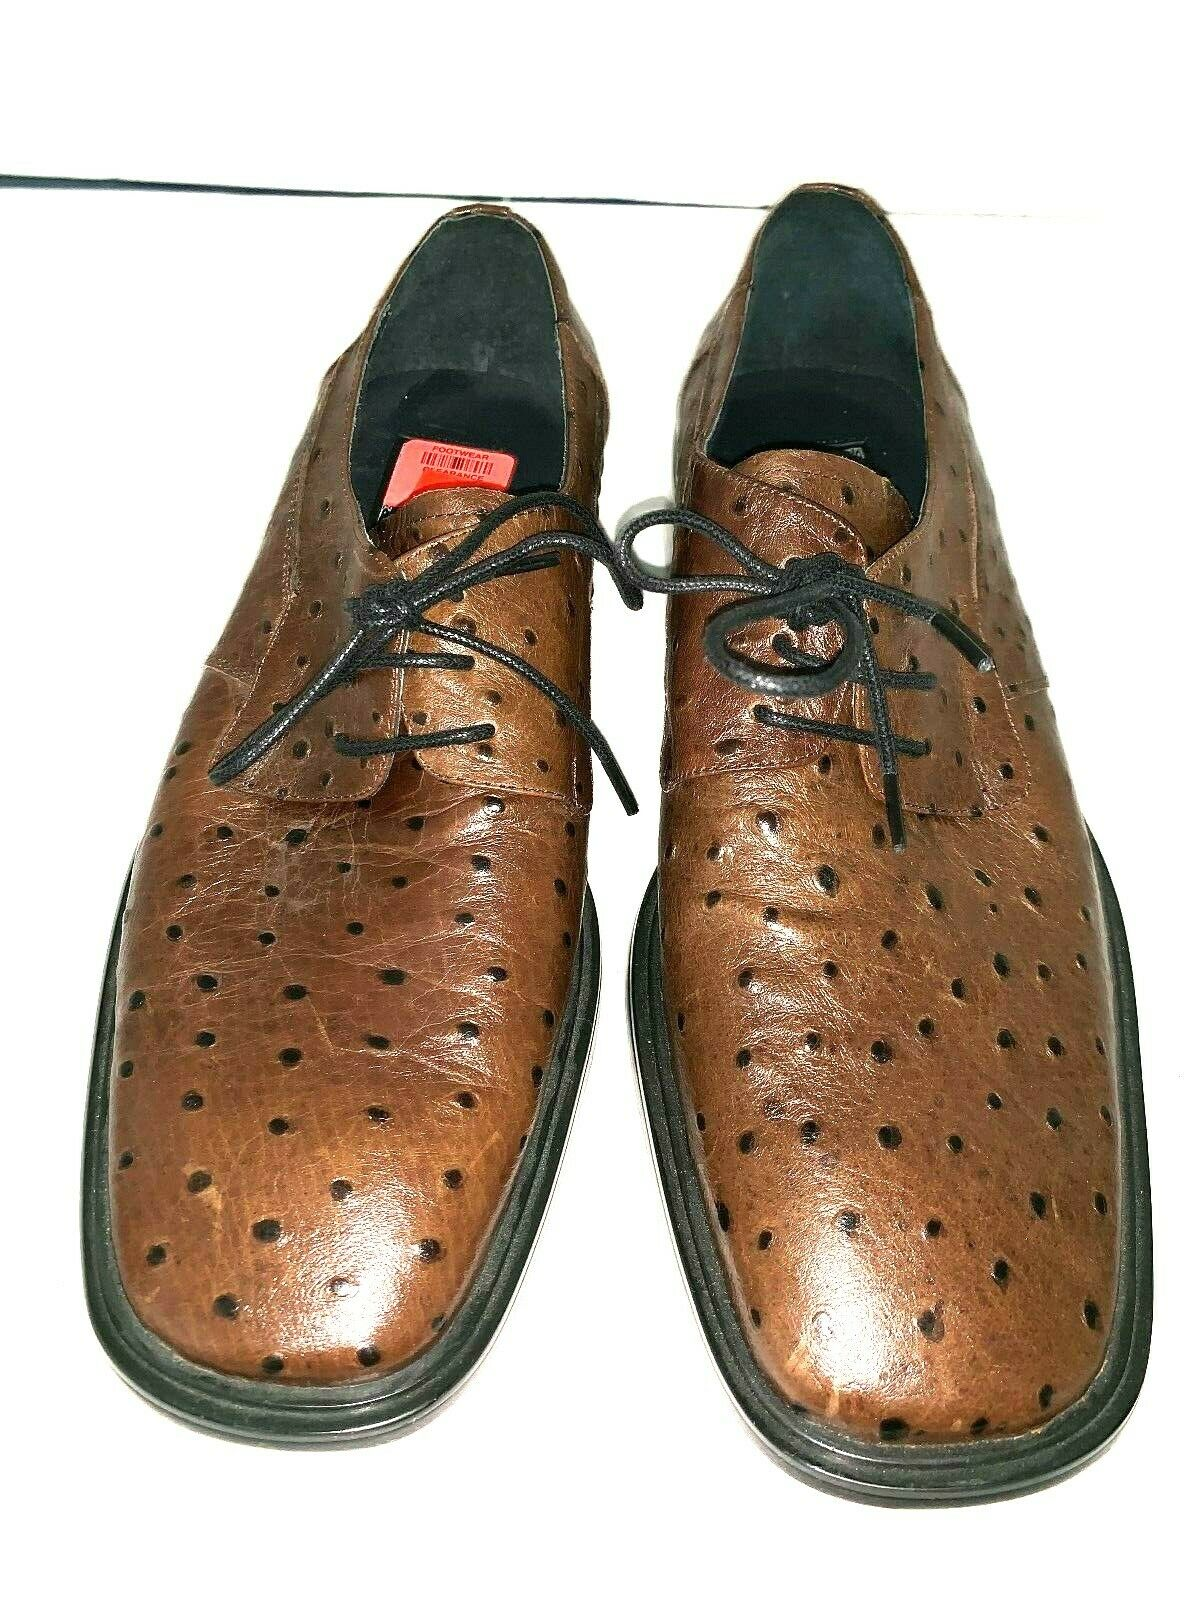 New Borgesi Beverly Hills Collection Full OSTRICH Brown Oxford Men's Size 9-9.5